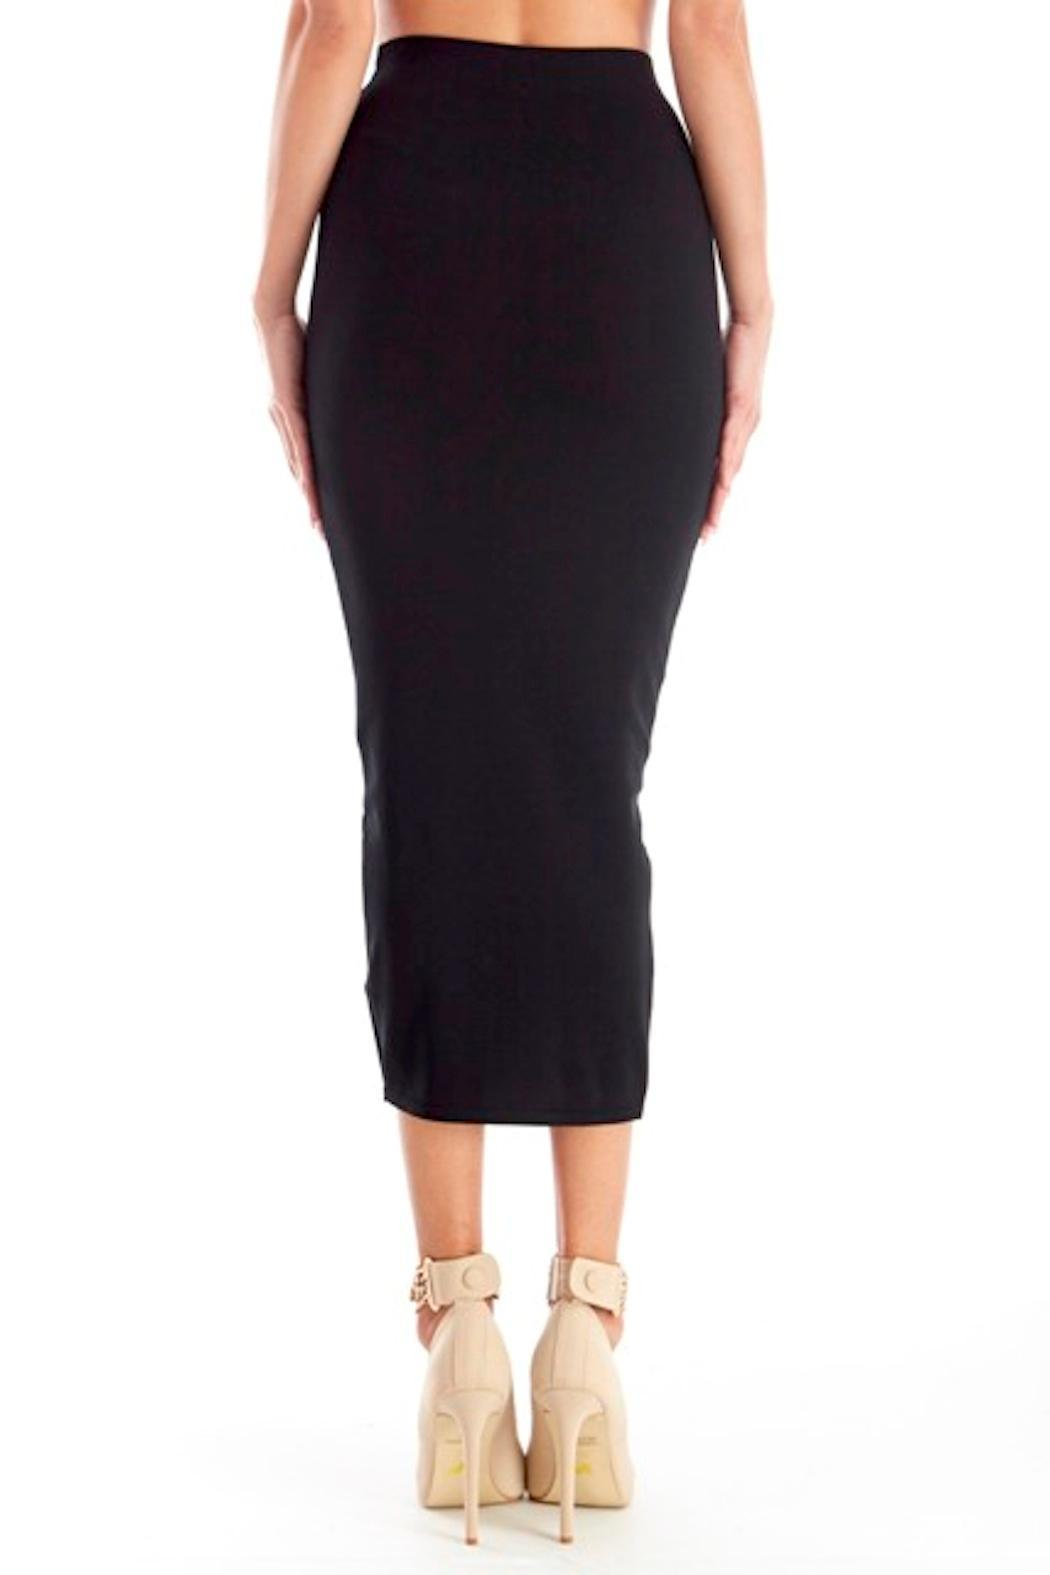 Jasmine Highwaisted Bodycon Skirt from Los Angeles by Snatched ...